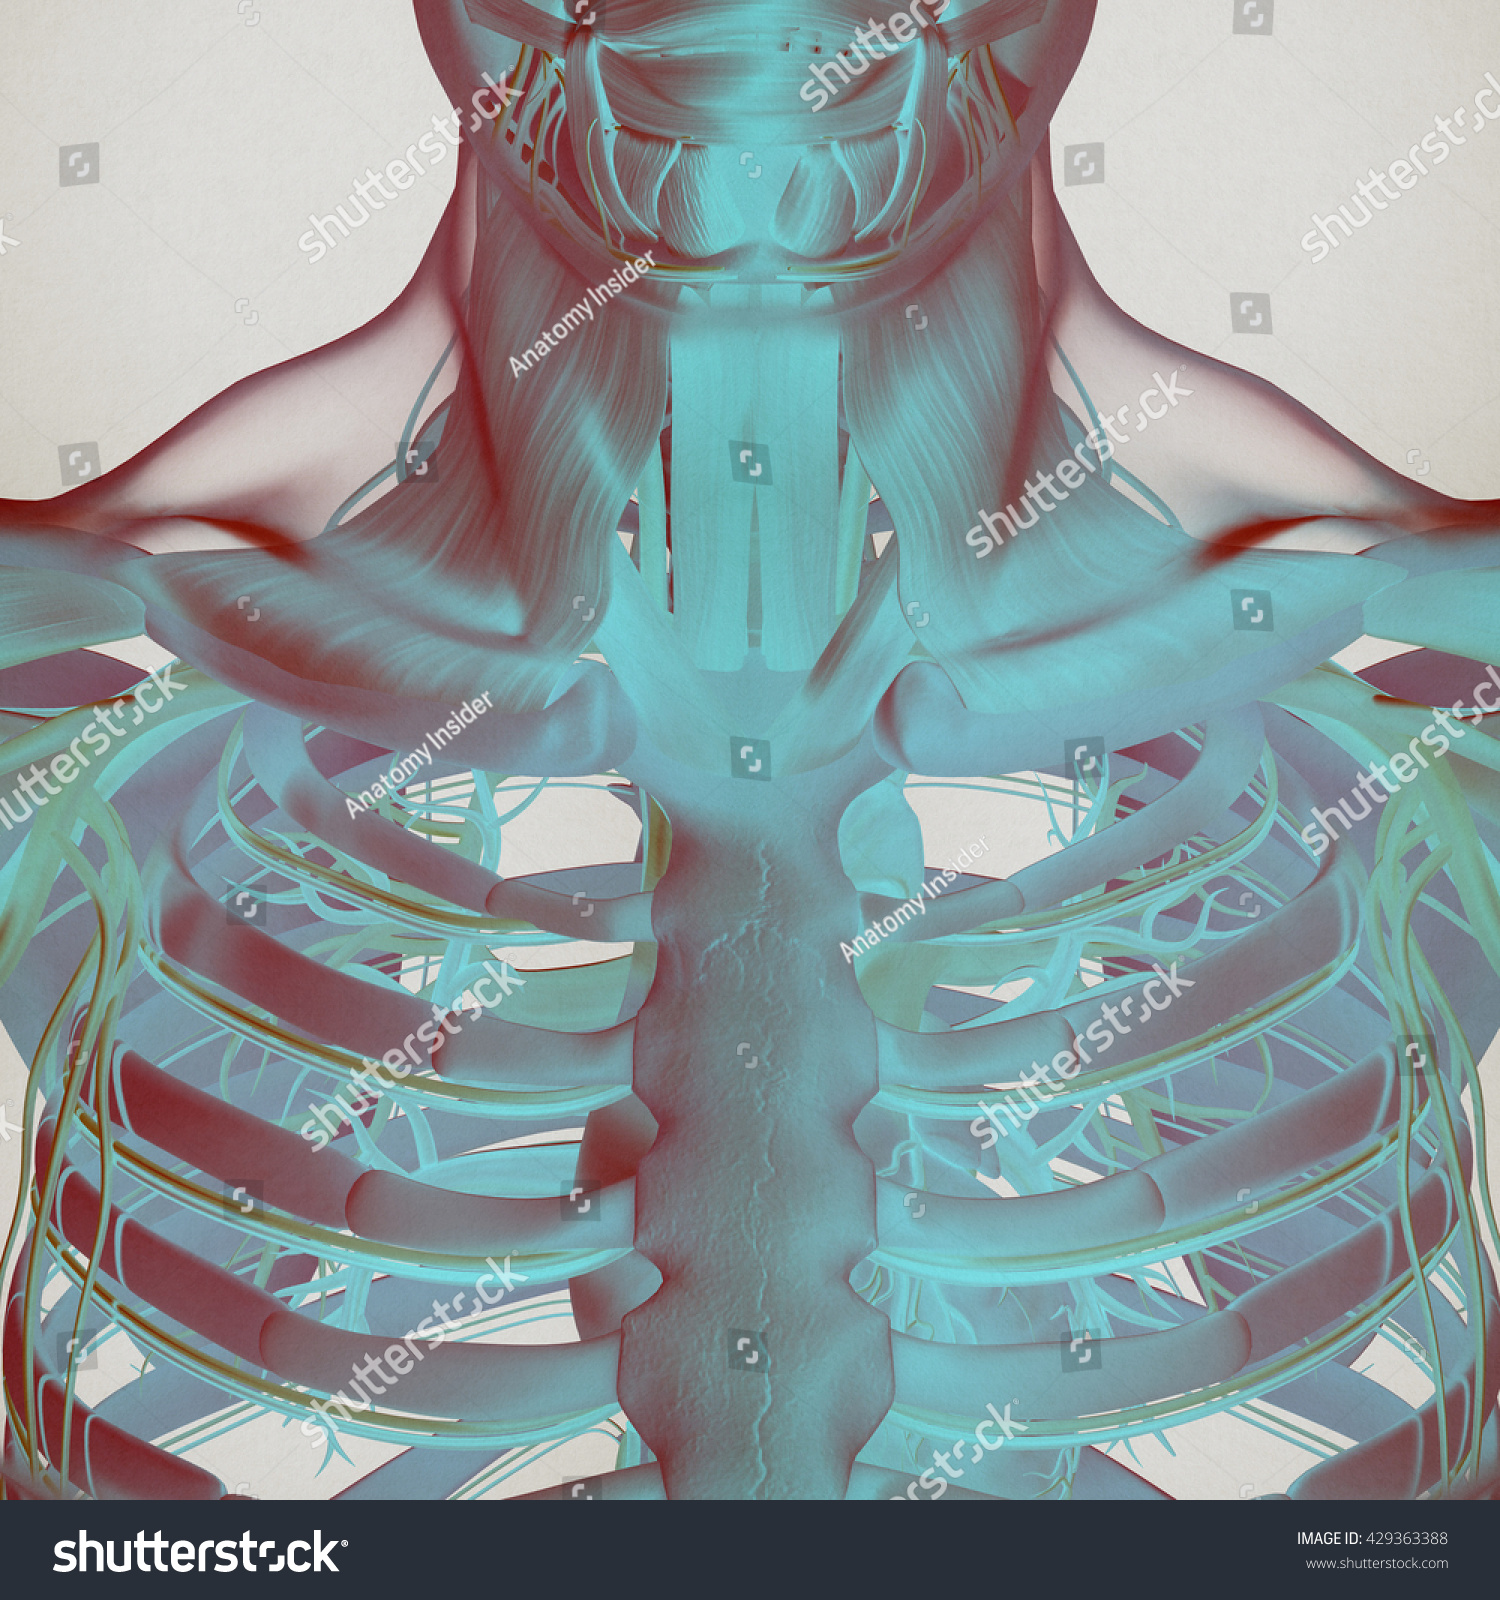 diagram of rib cage and muscles radial nerve royalty free stock illustration human anatomy torso muscle vascular system futuristic scan